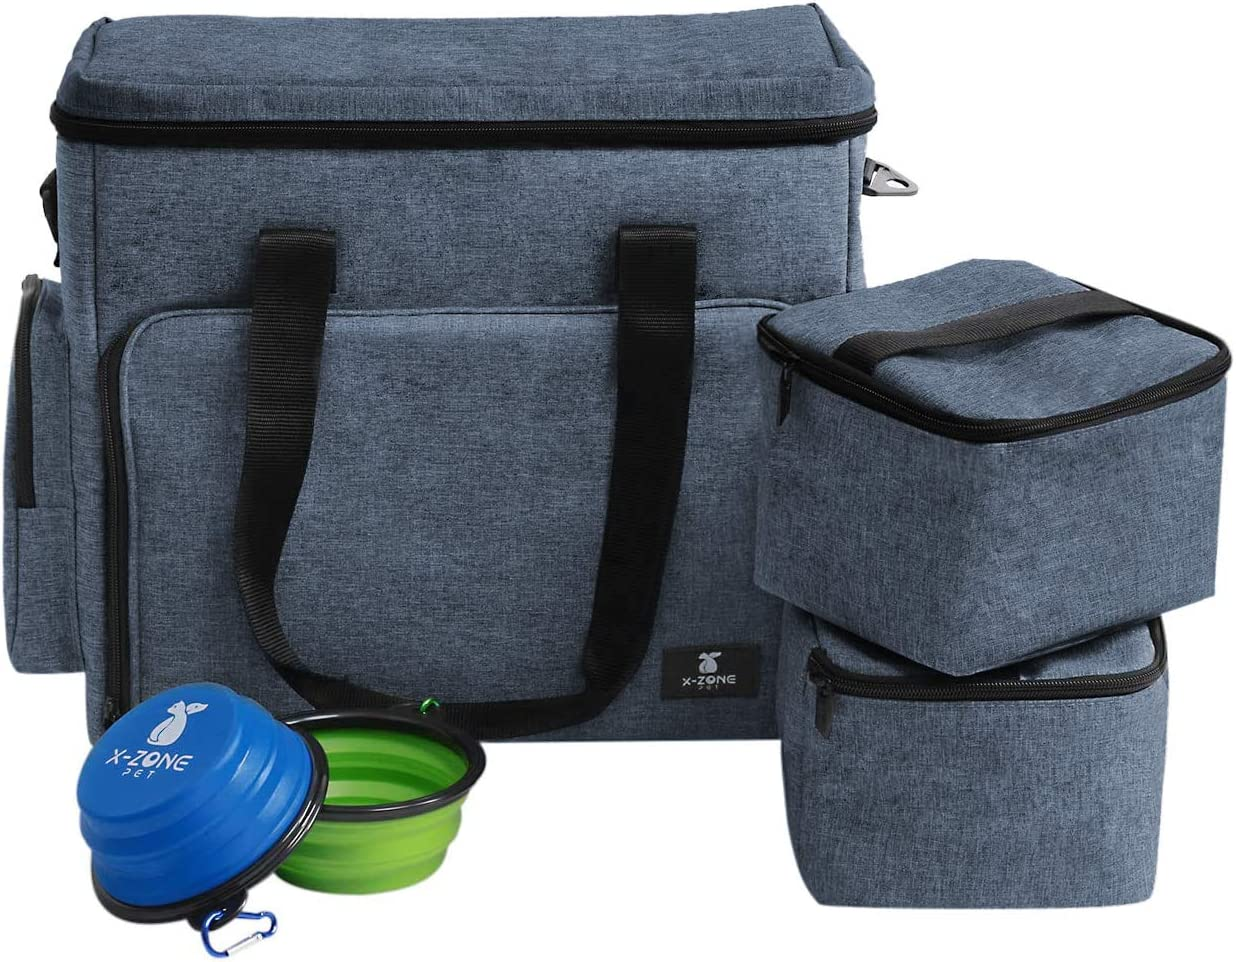 X-ZONE PET Portable Airline Approved Luggage Bag with Multi-Function Pockets Includes Travel Bag, Food Carrier Bag and Silicone Collapsible Bowls for Pets (Blue)